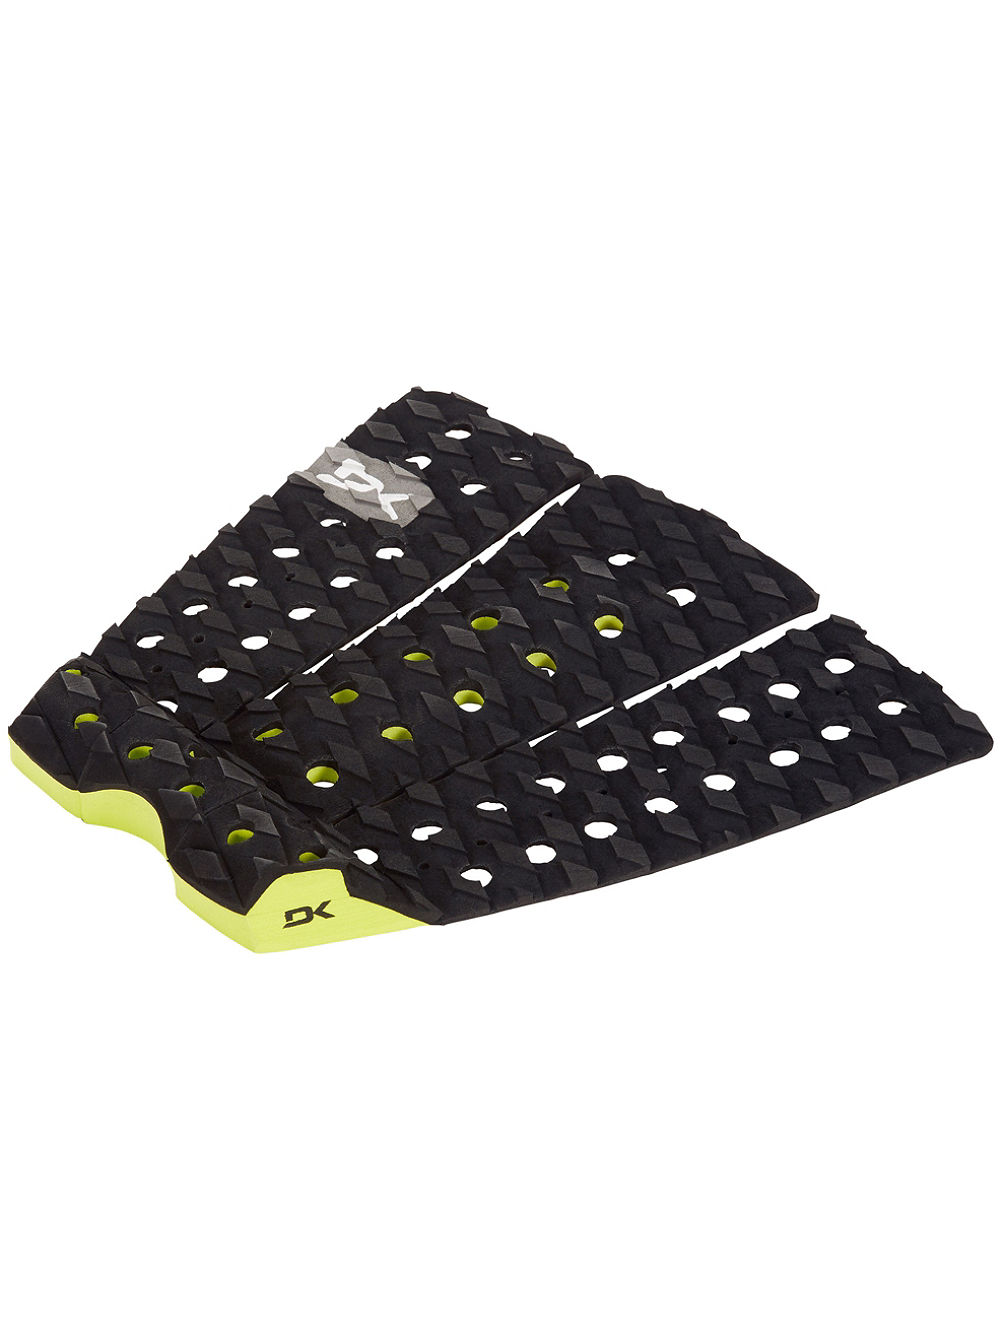 Launch Surf Surf Traction Pad